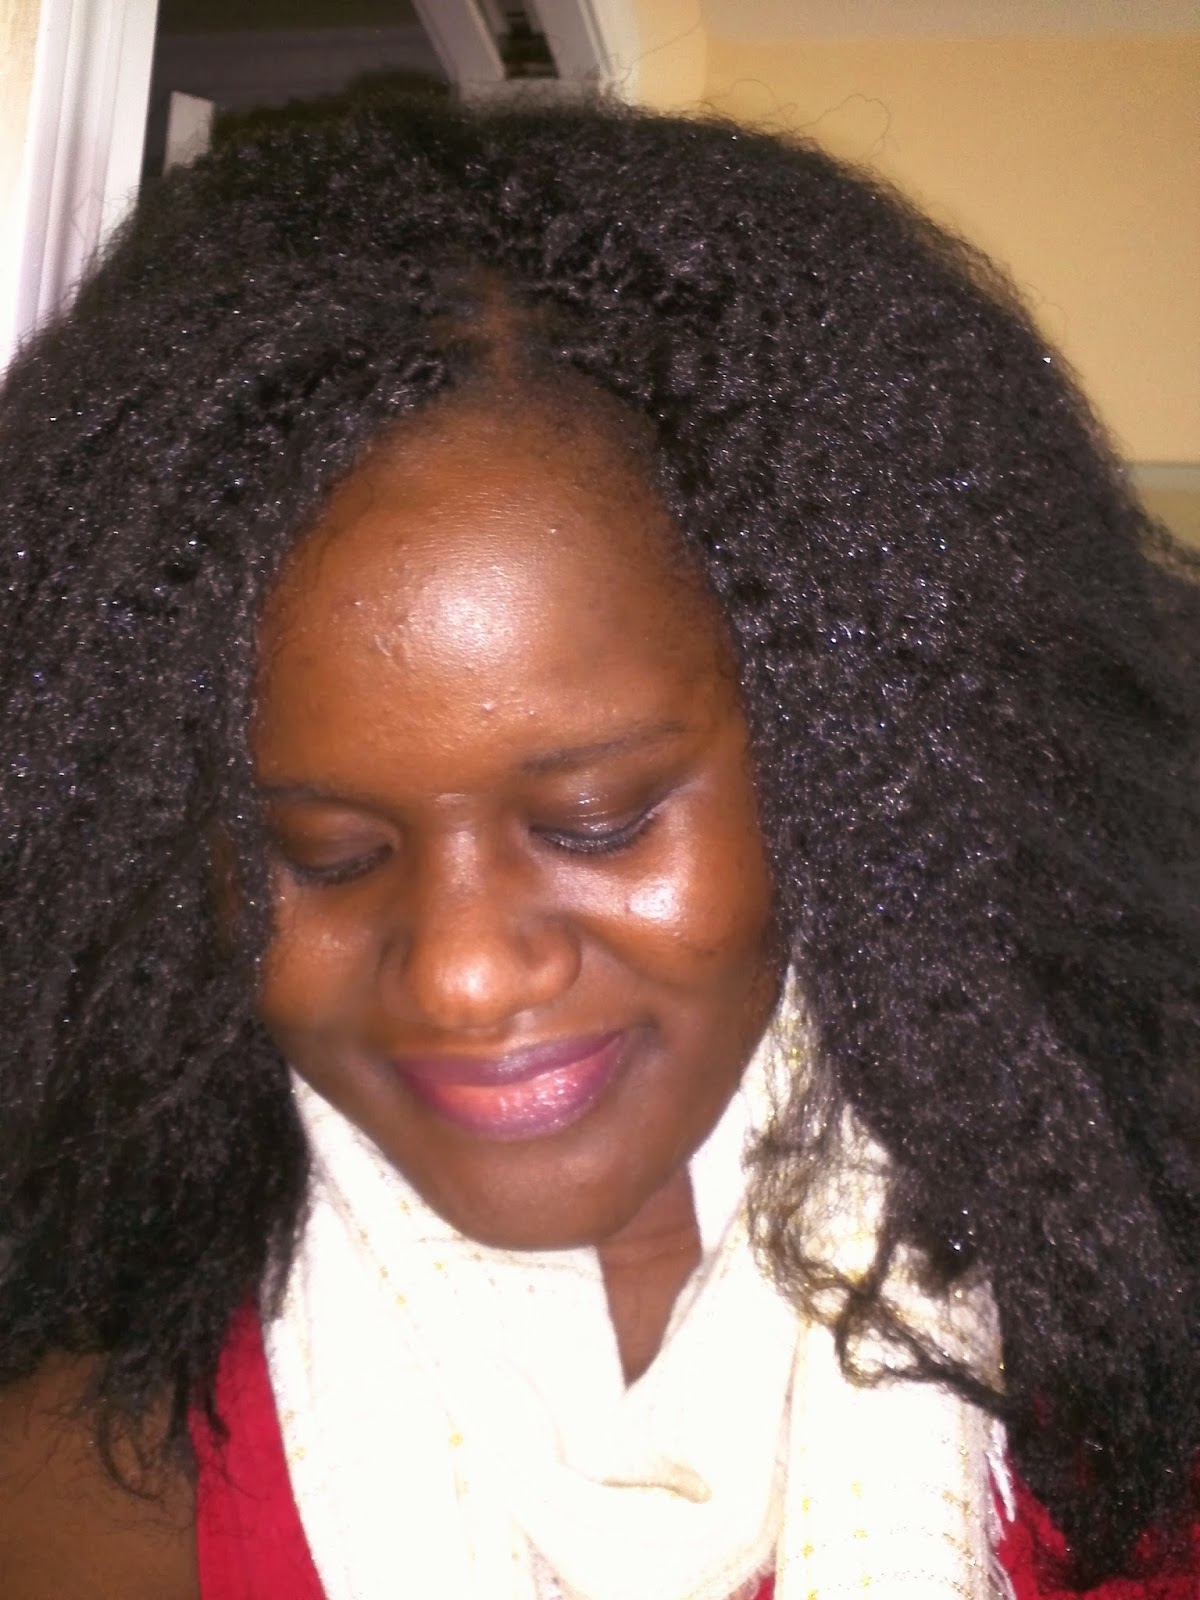 Crochet Hair Kanekalon : Chic From Hair 2 Toe: Crochet Braids With 100% Kanekalon Marley Hair